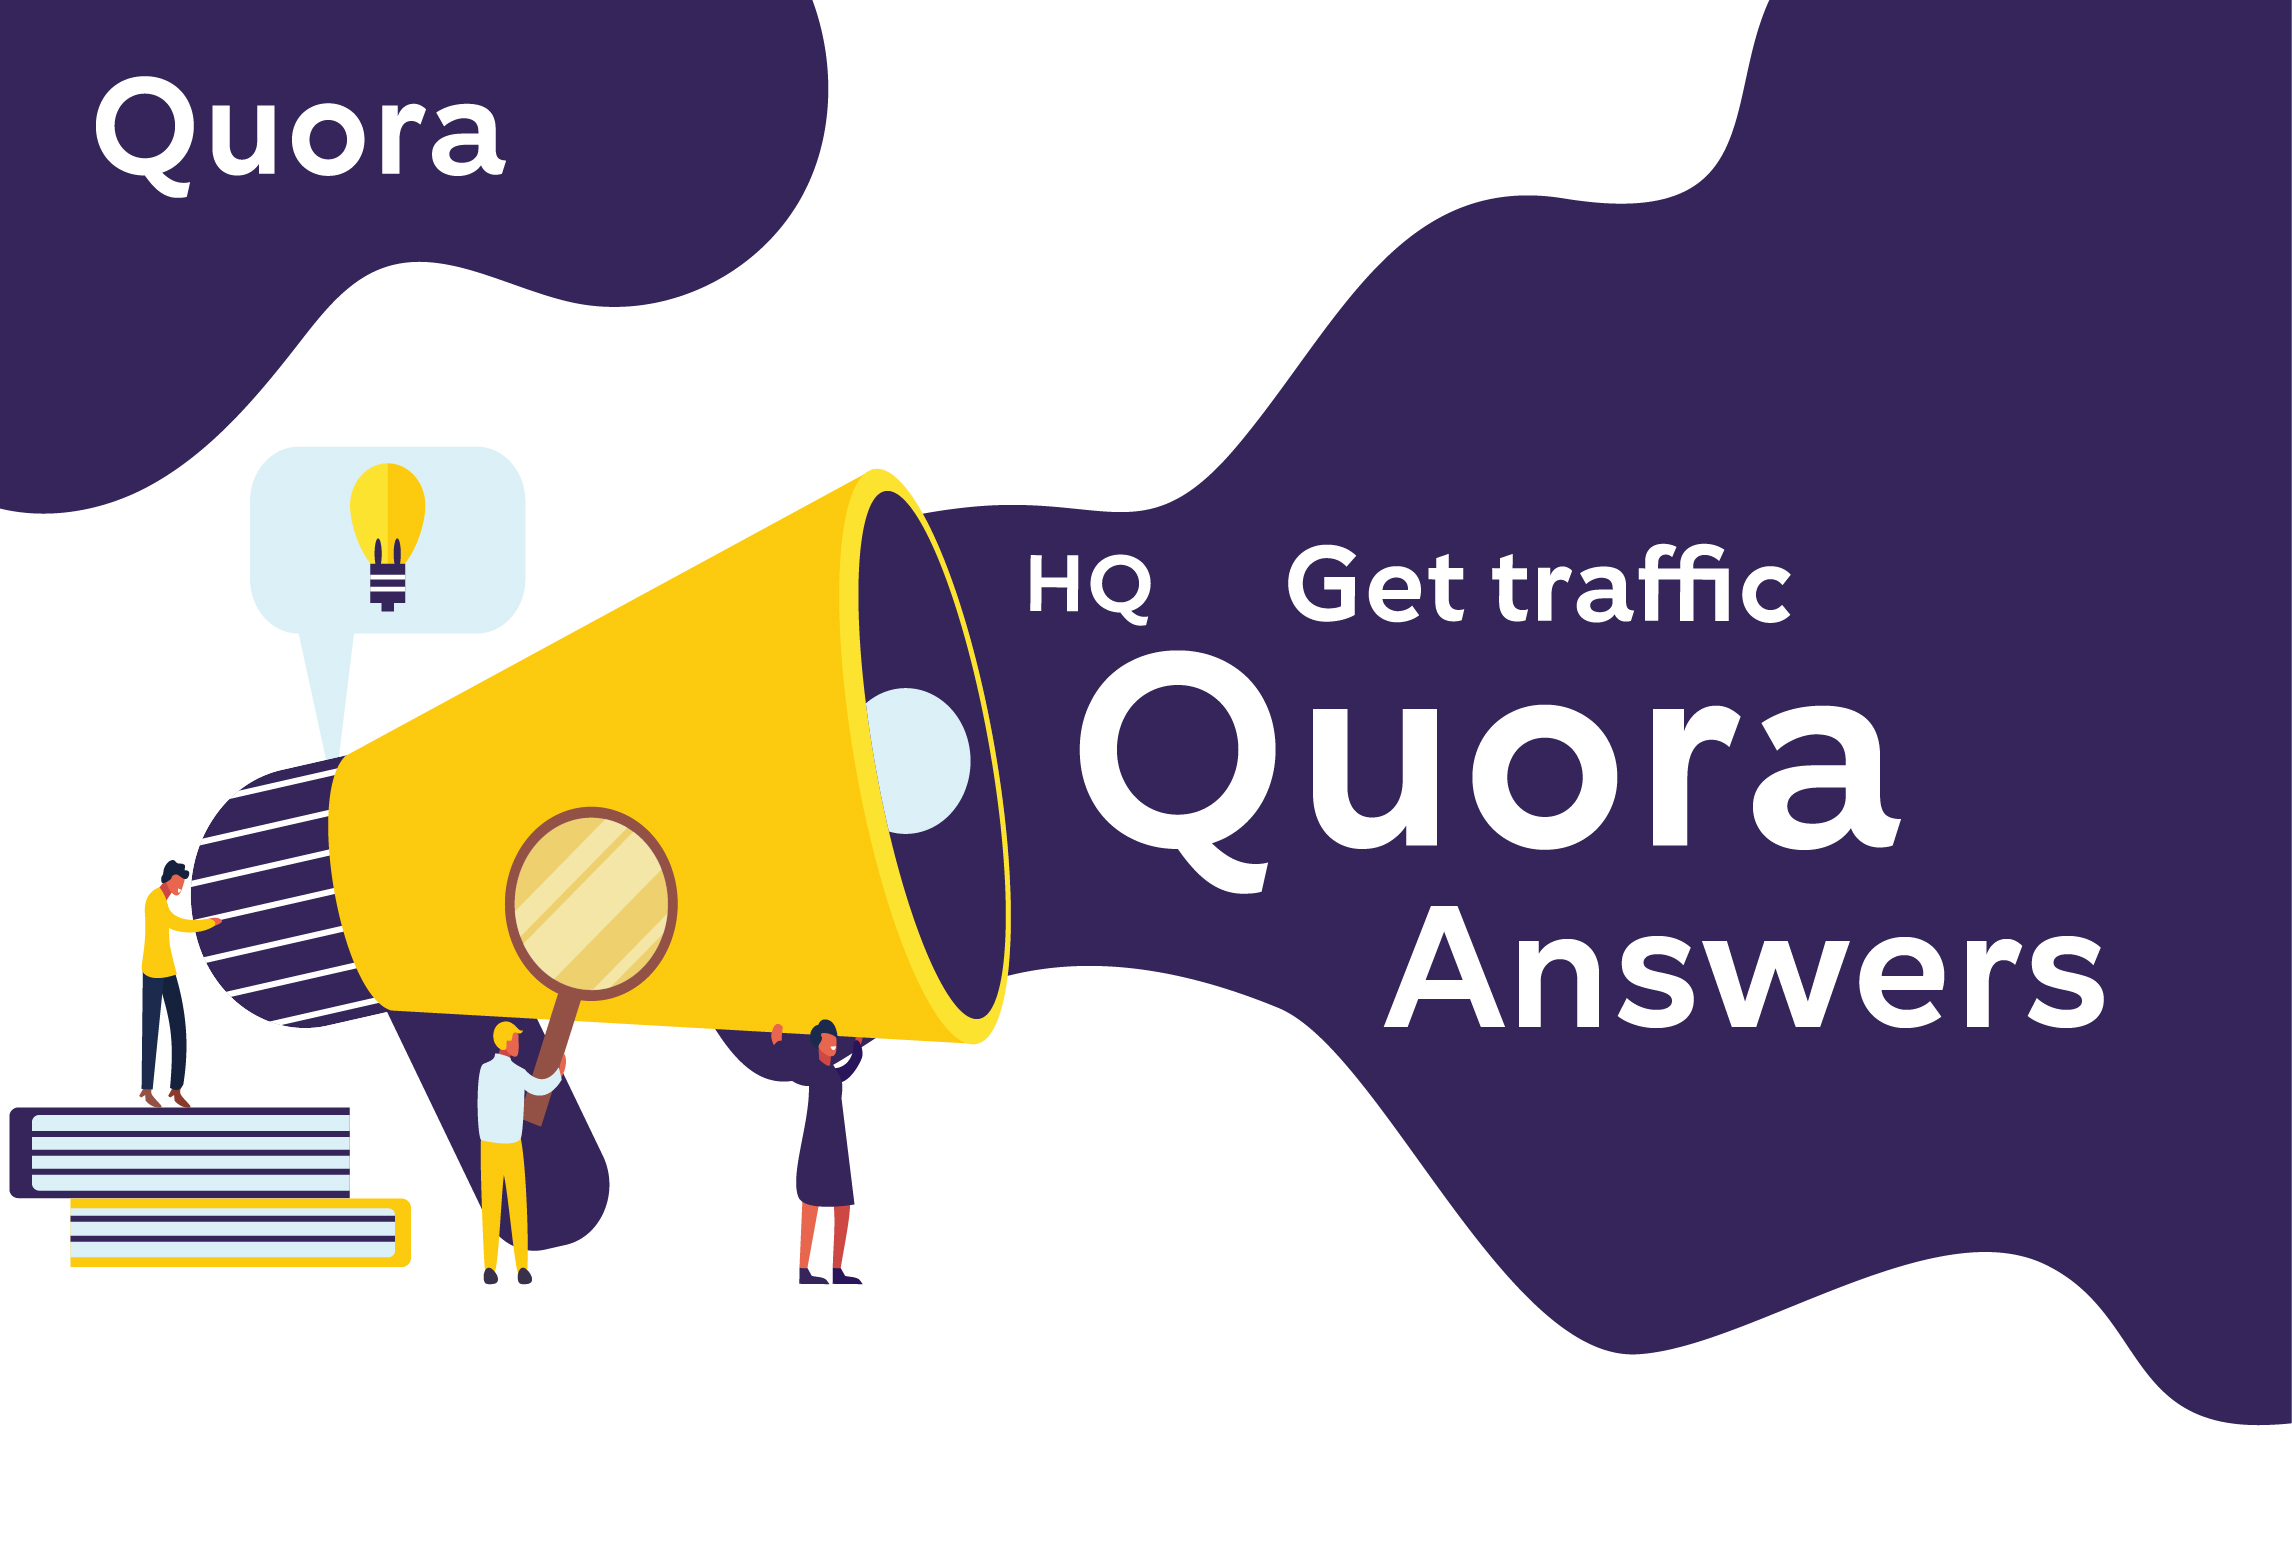 Promote your website & keyword 4 HQ quora answers with backlink